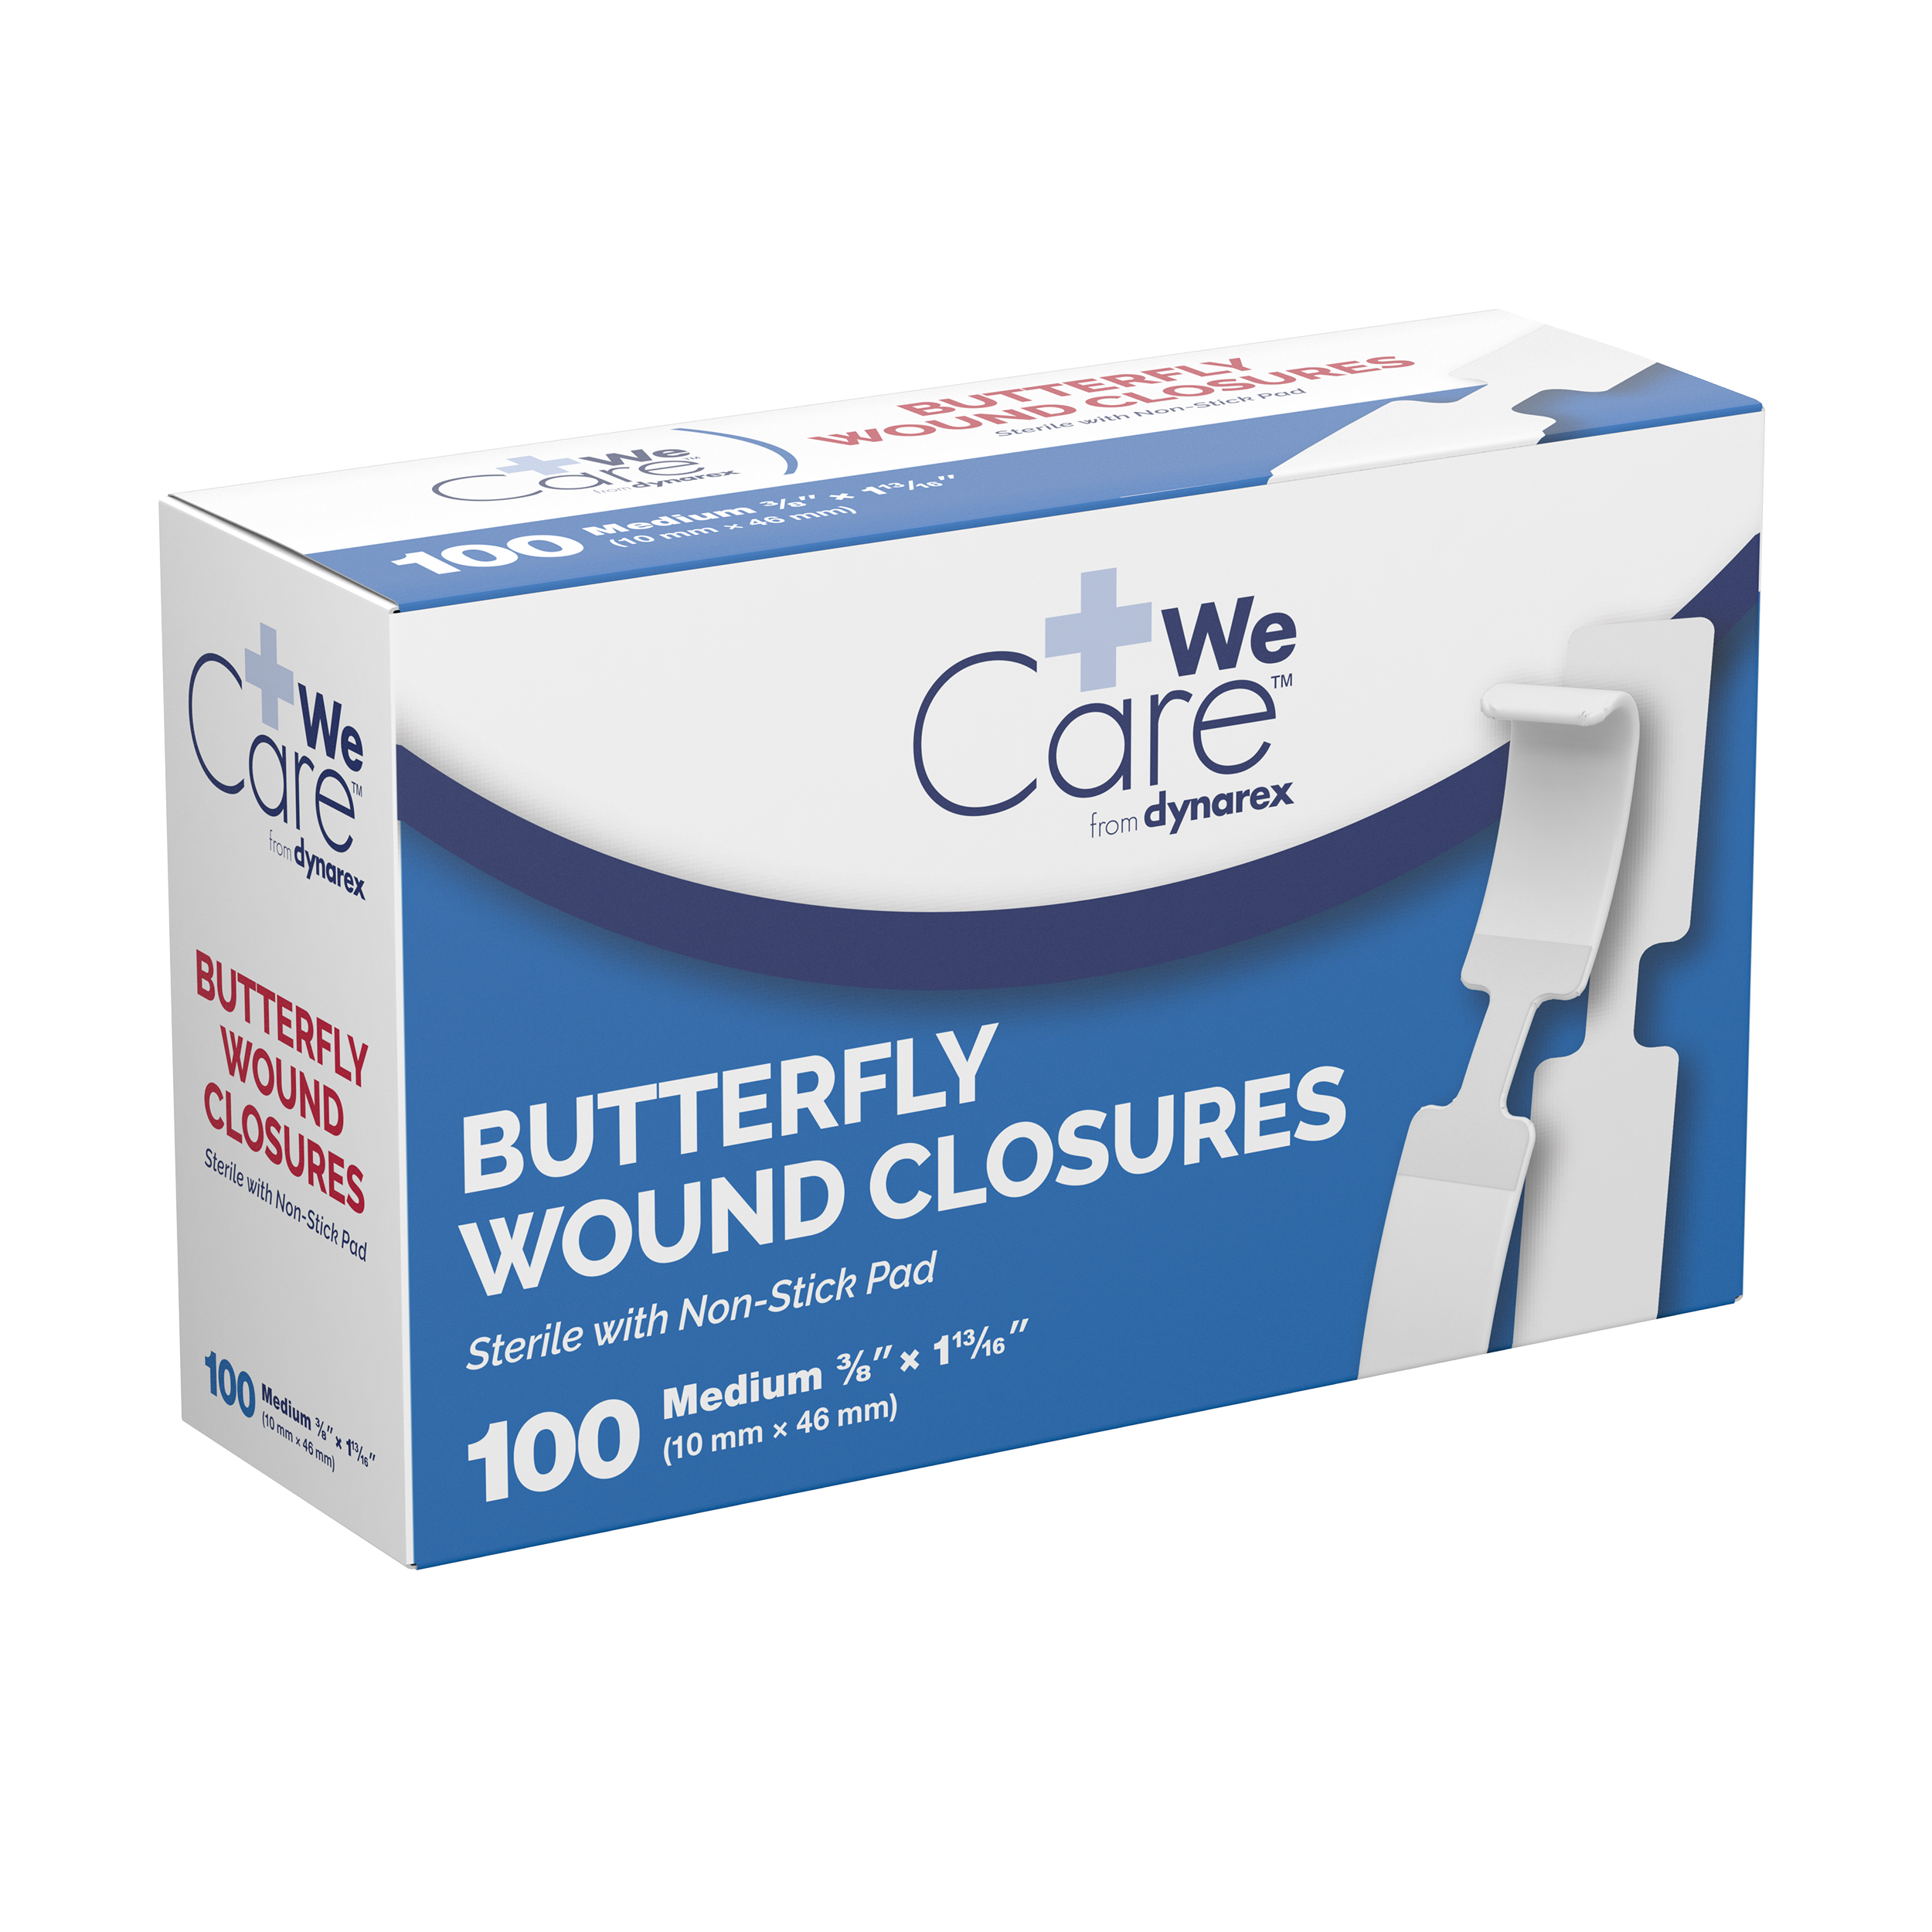 Butterfly Wound Closure Sterile - 3/8